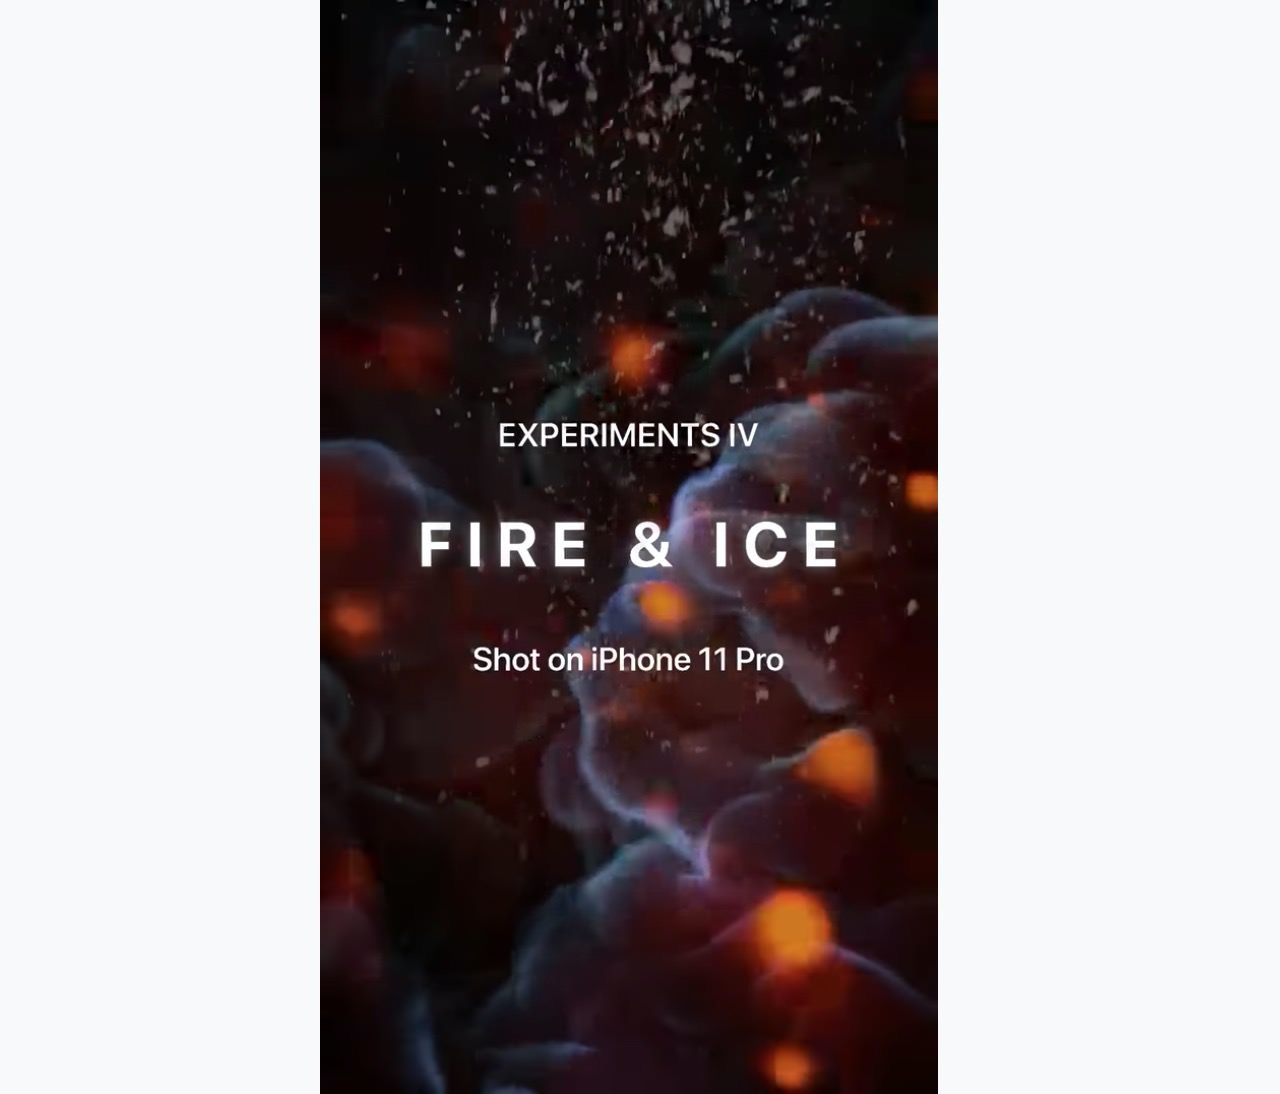 Apple、iPhone 11 Proで撮影した動画「Experiments IV: Fire & Ice」公開